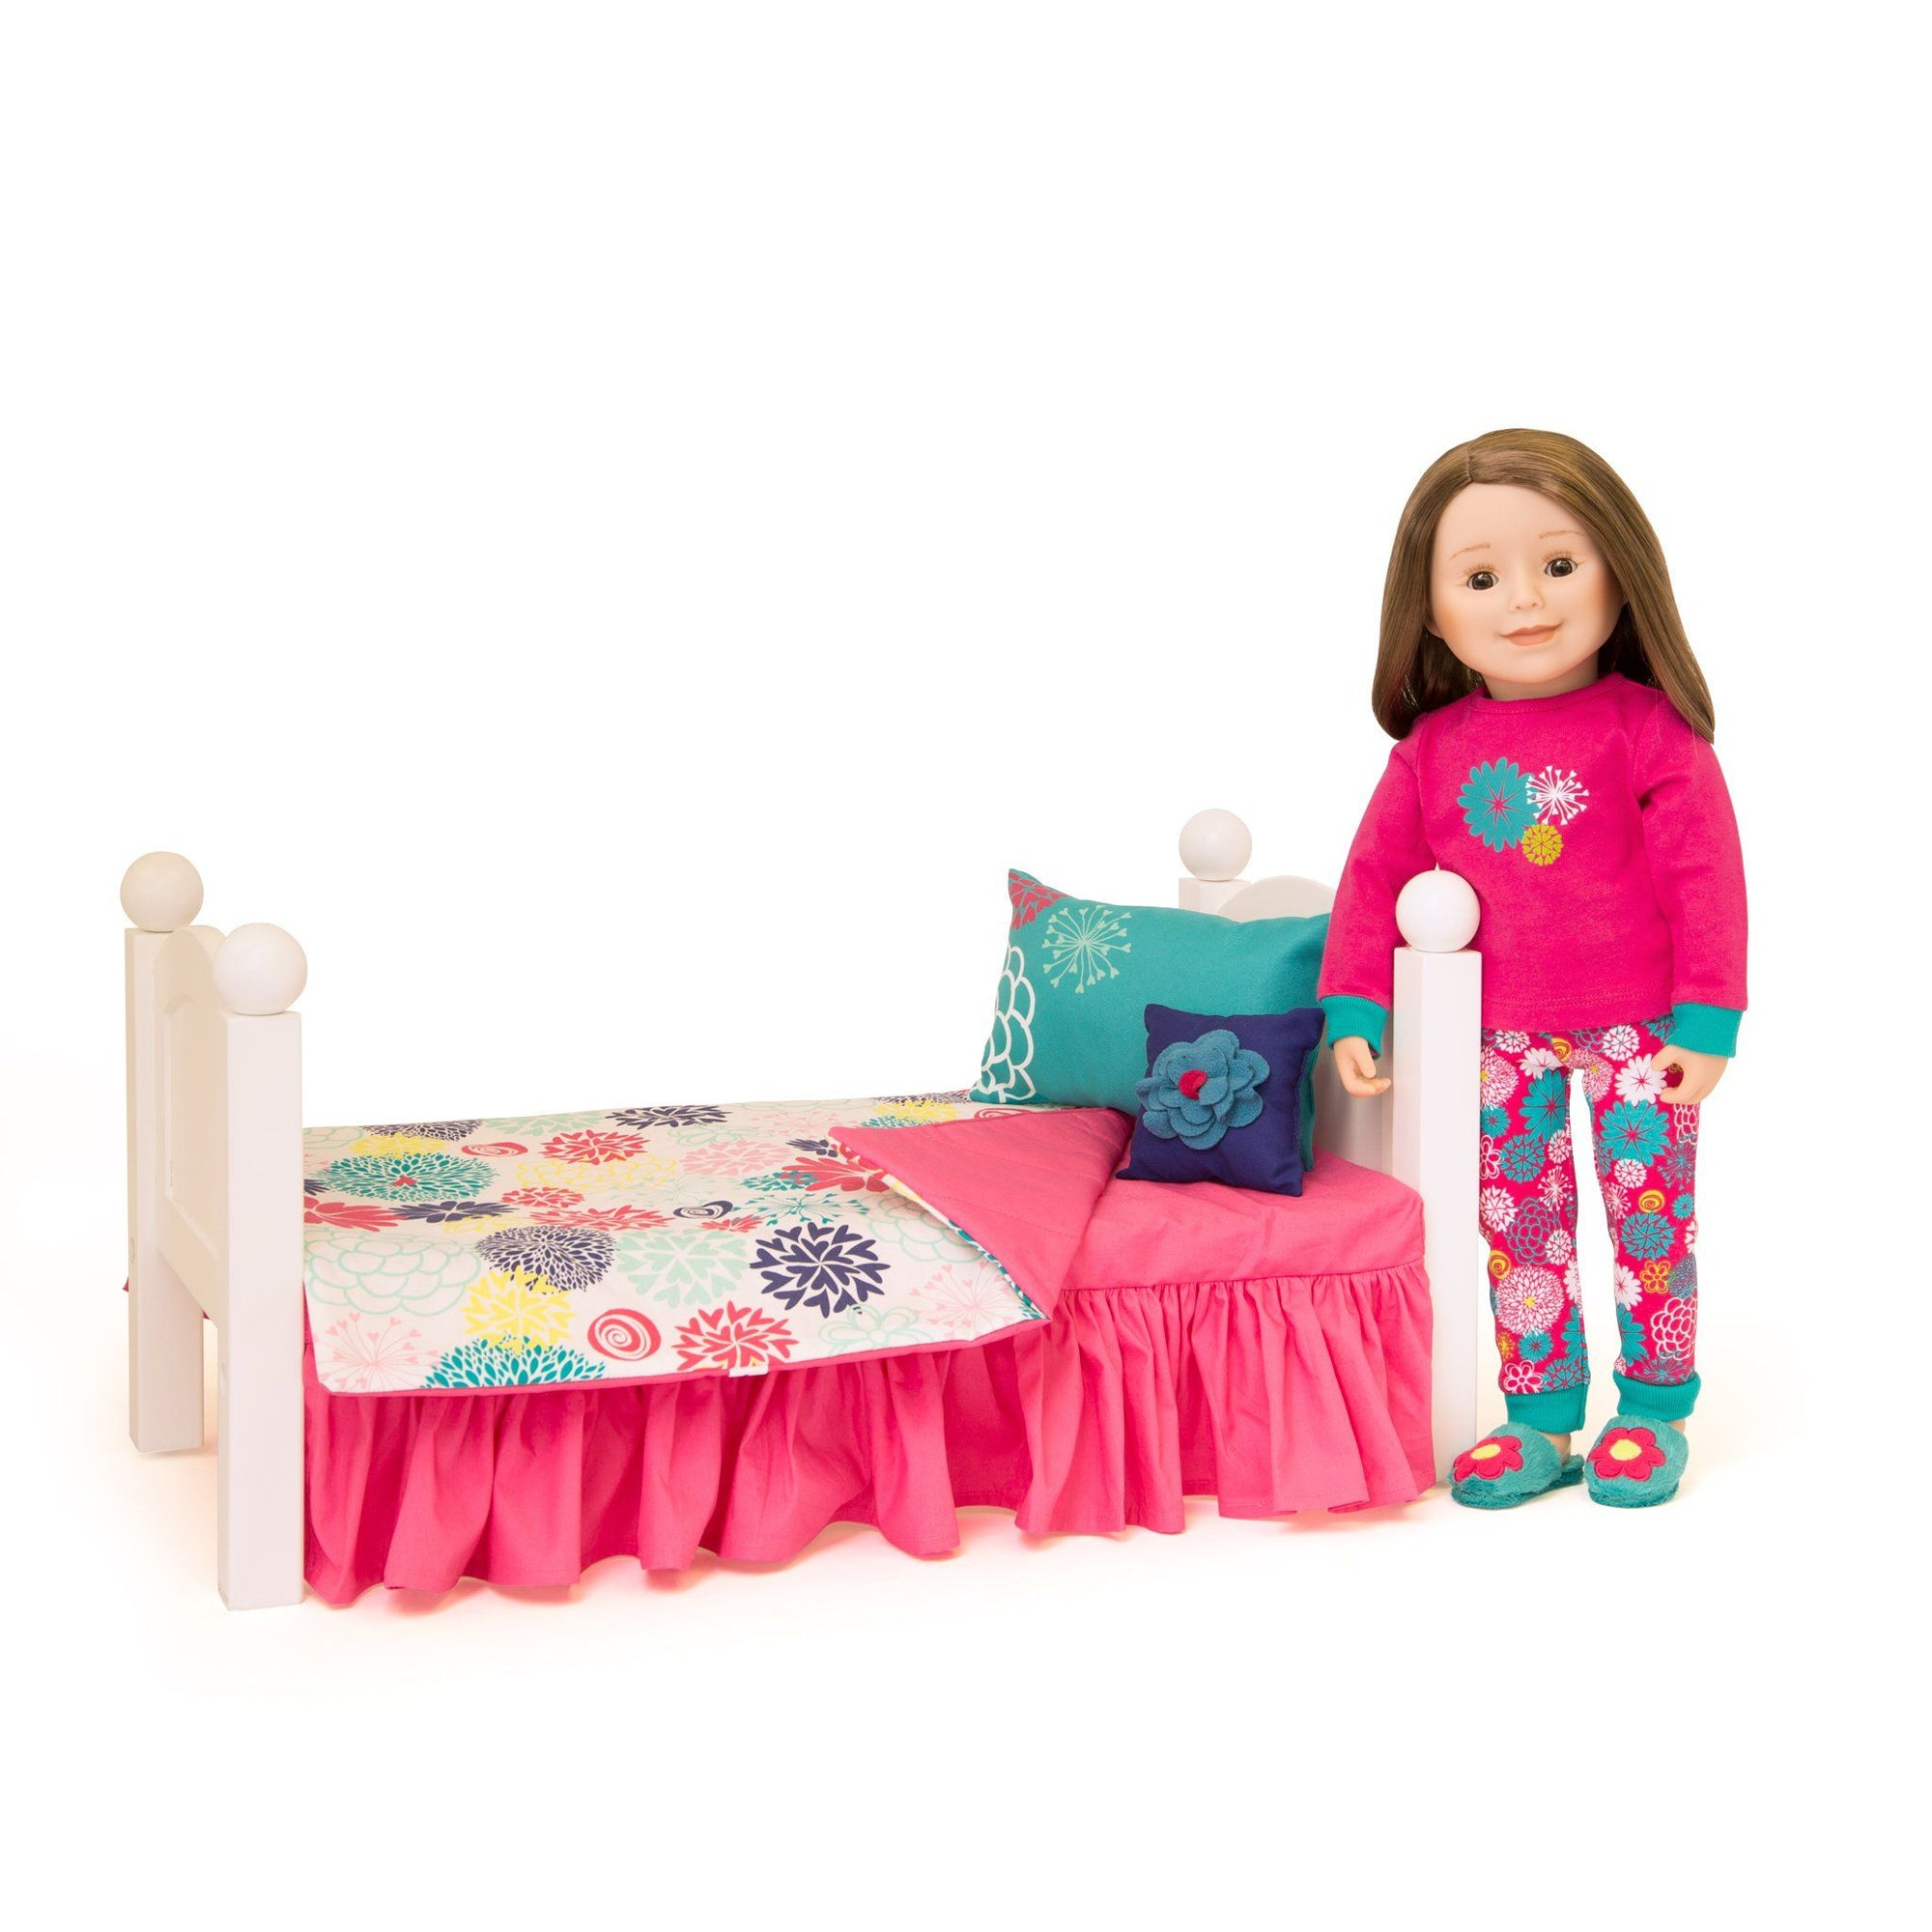 "Comforter, covered mattress with dust ruffle and two pillows shown with 18"" doll and bed."